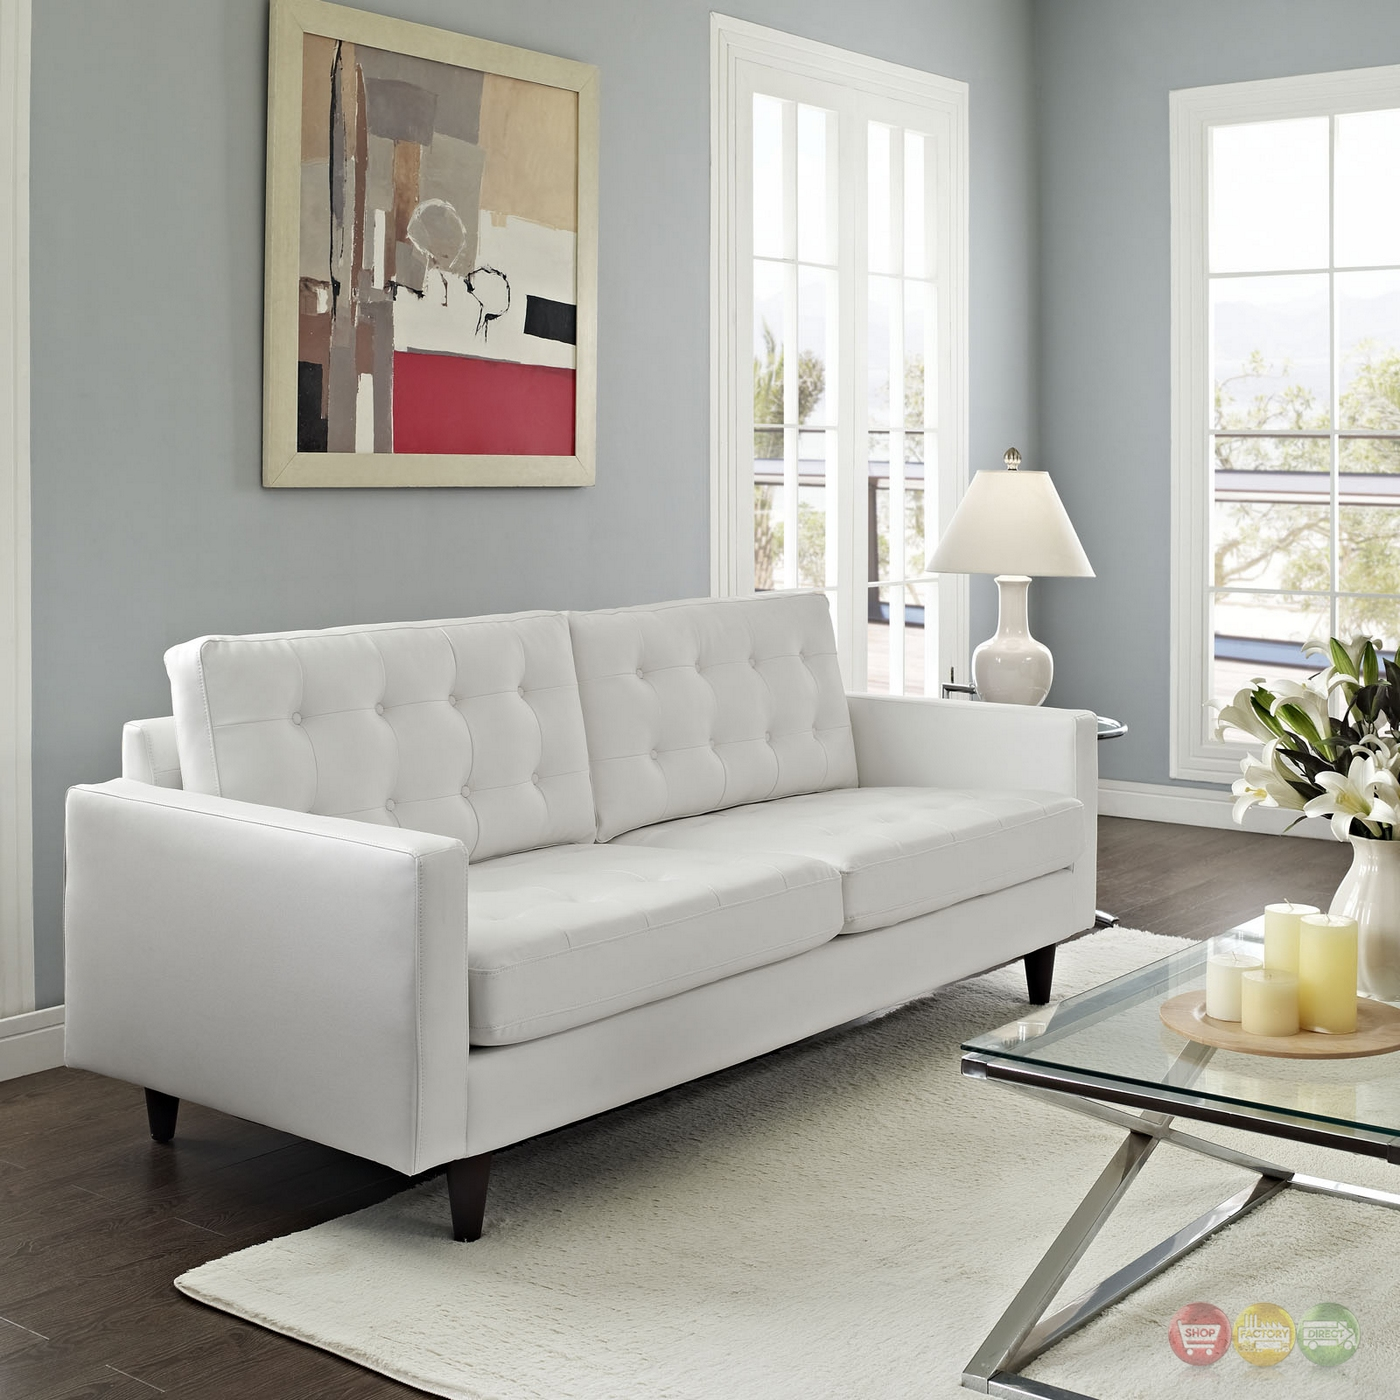 White Leather Sectional Sofa: Empress Contemporary Button-tufted Leather Sofa, White